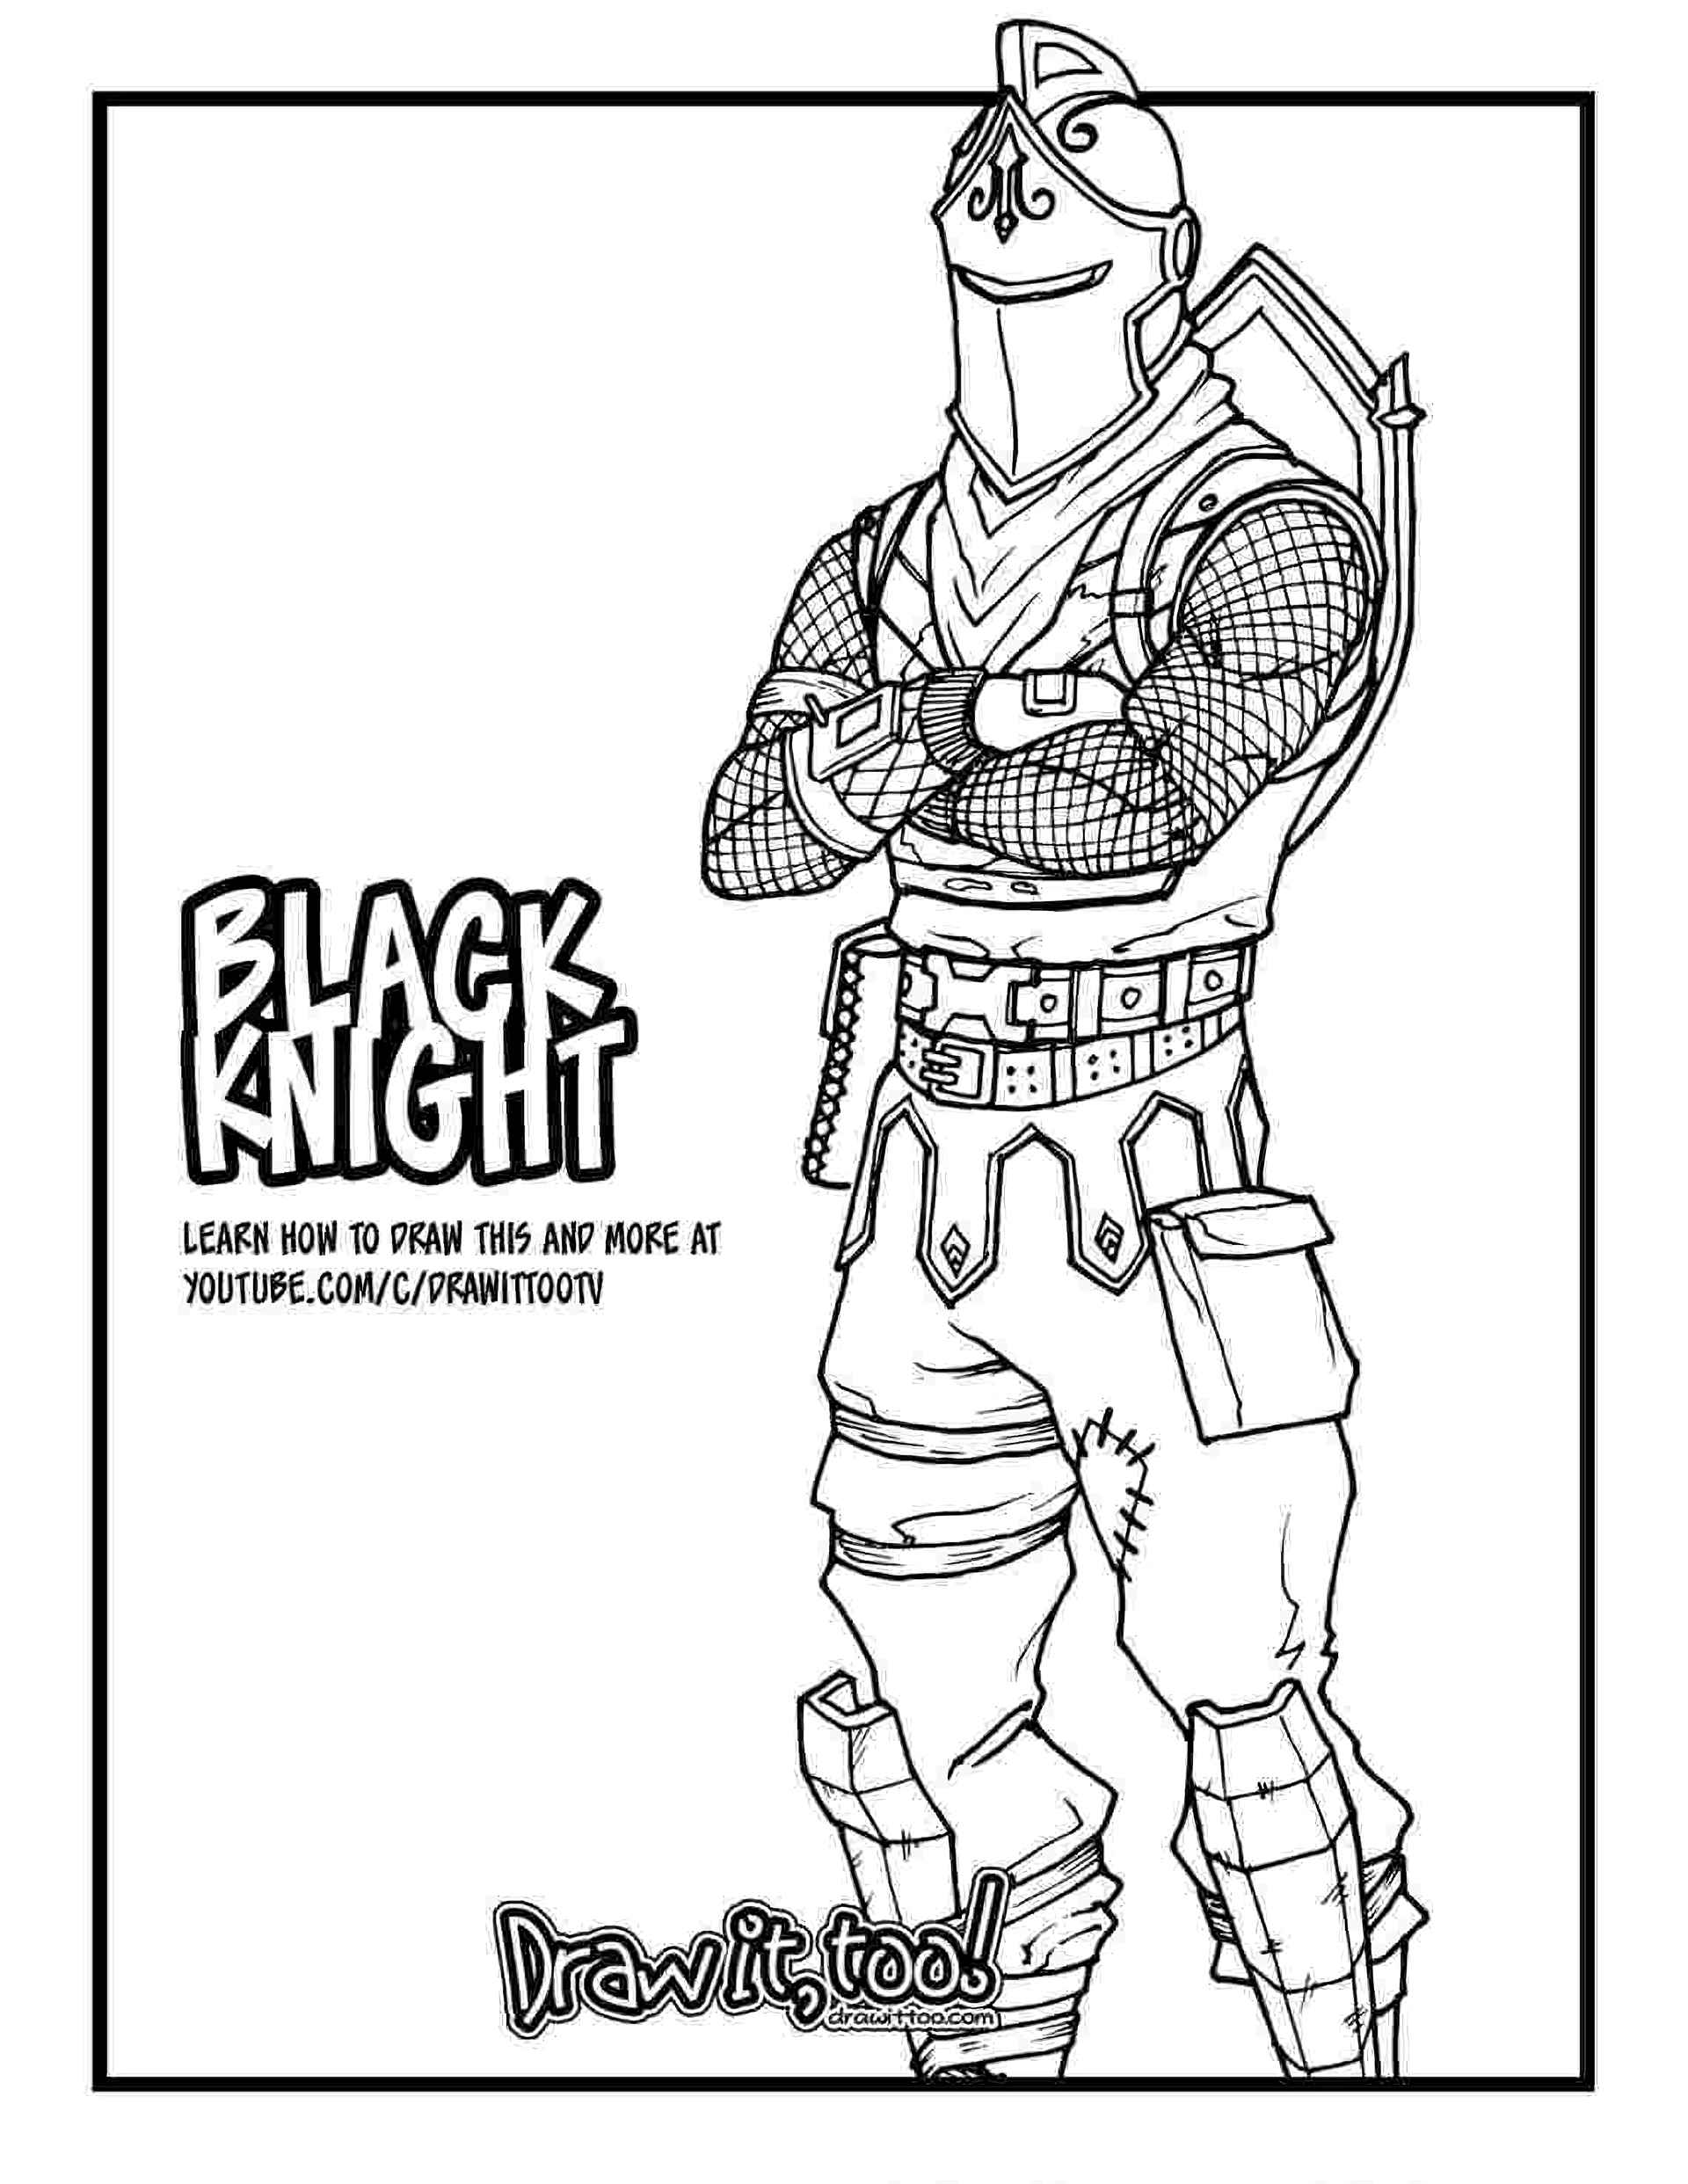 Black Knight Skin From The Game Fortnite Coloring Page